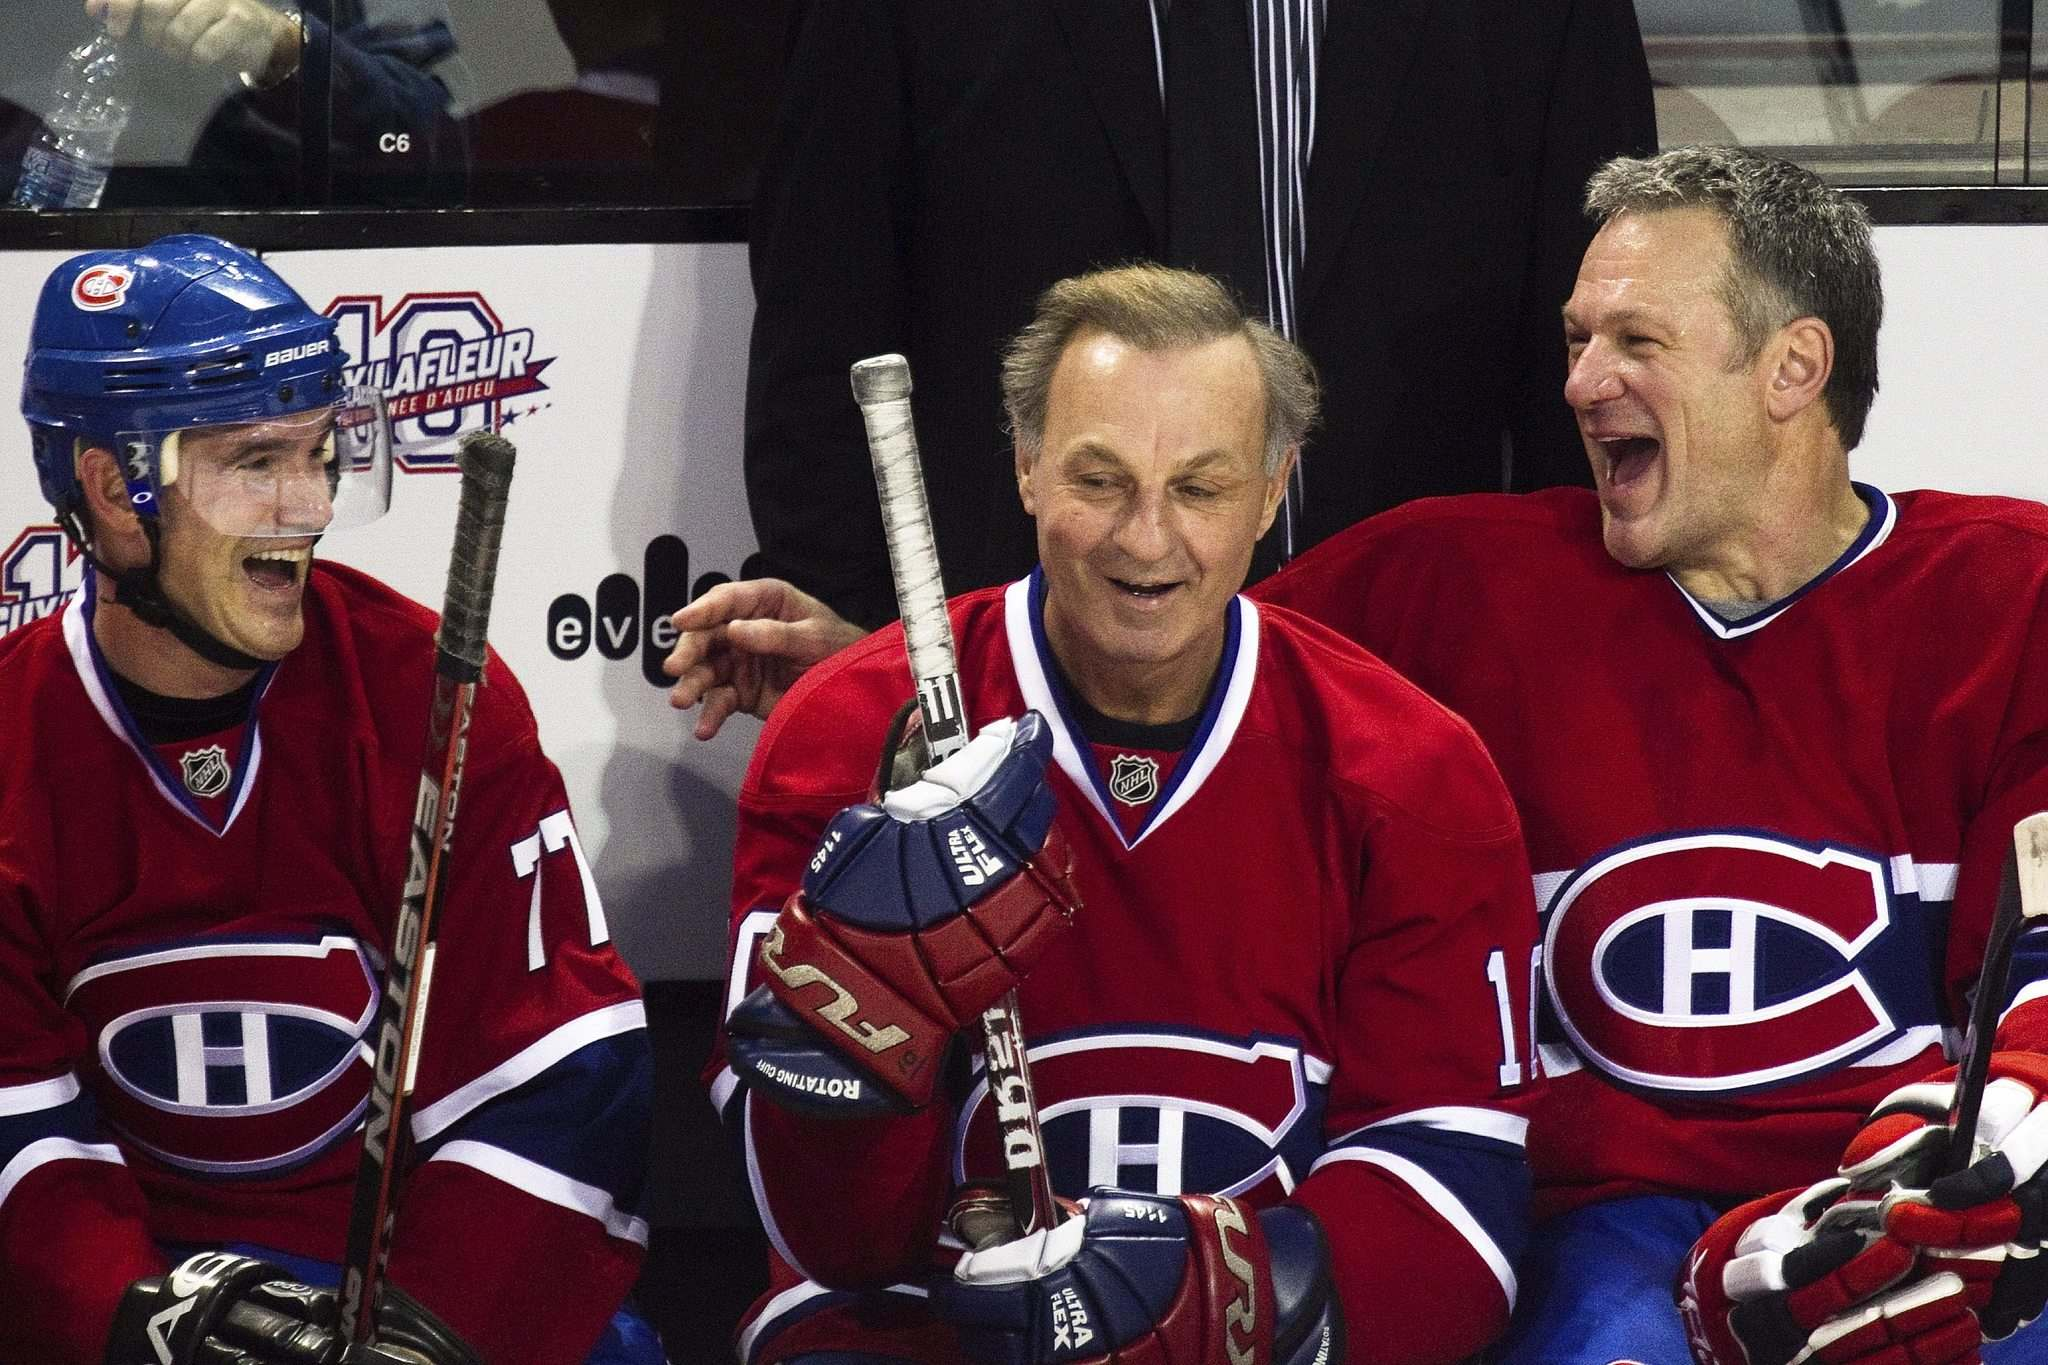 DARIO AYALA/THE GAZETTE FILES</p><p>Claude Lemieux (right) has some fun with Guy Lafleur during Lafleur&rsquo;s farewell game with the Anciens Canadiens in 2010. Lemieux was in Winnipeg on Friday for his son&rsquo;s first NHL game.</p>